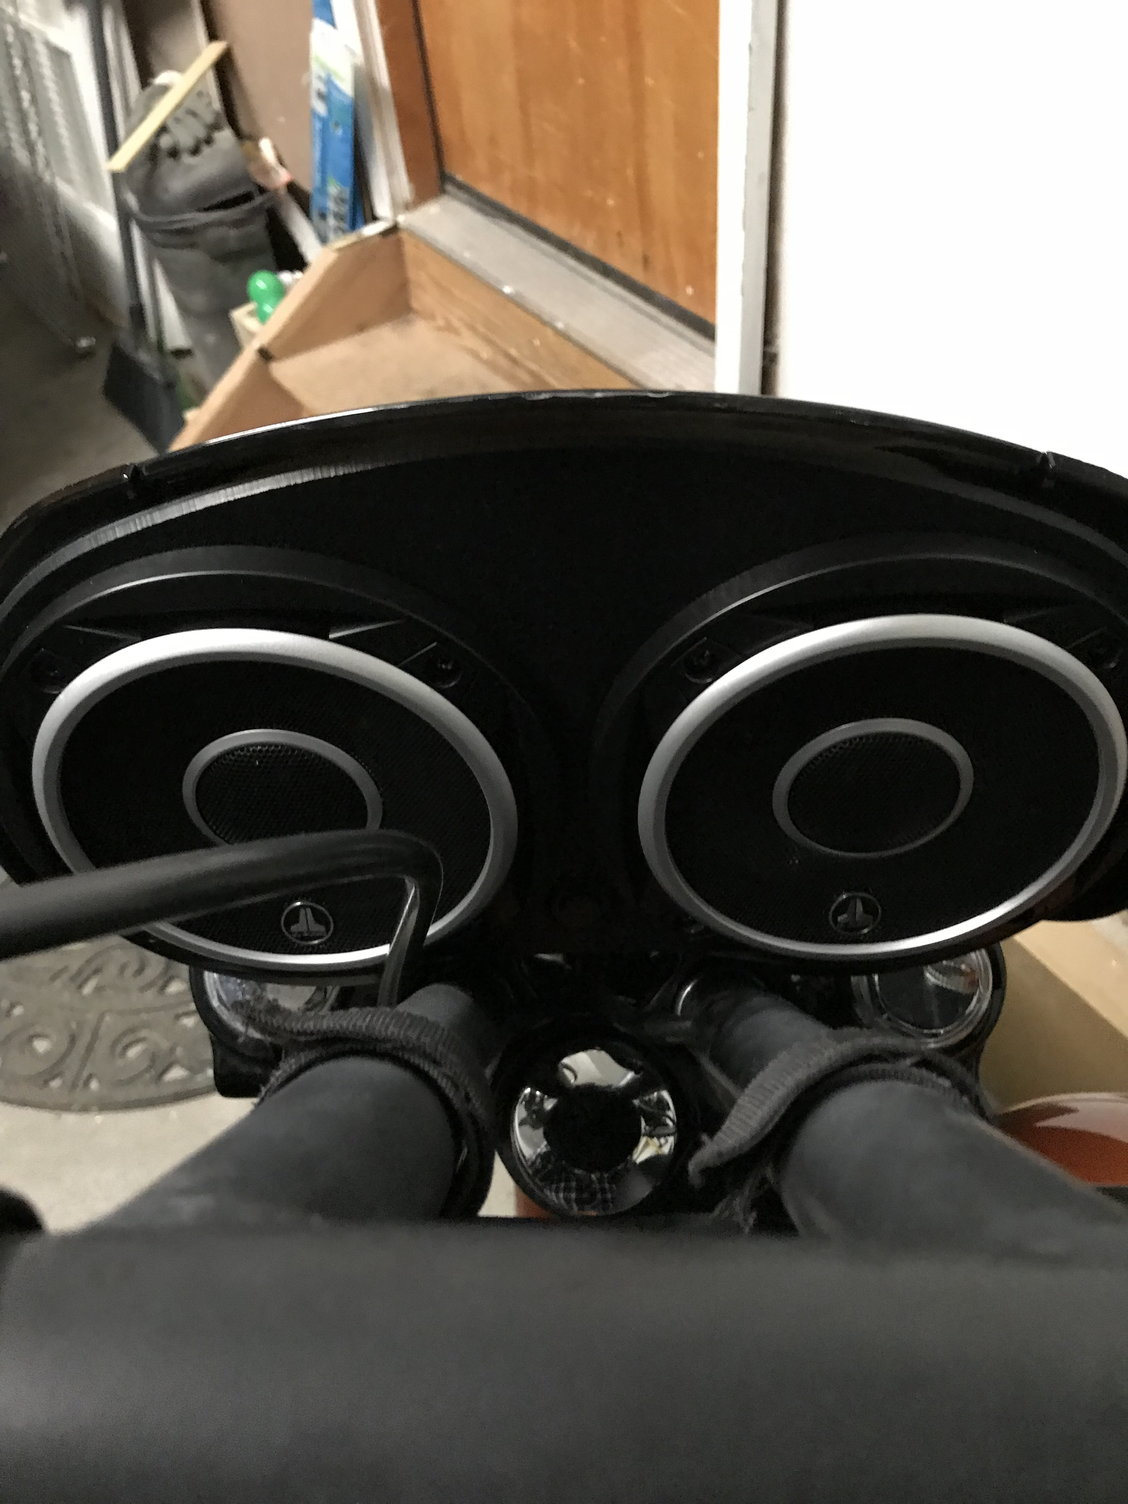 plex audio quarter fairing speakers page 3 harley